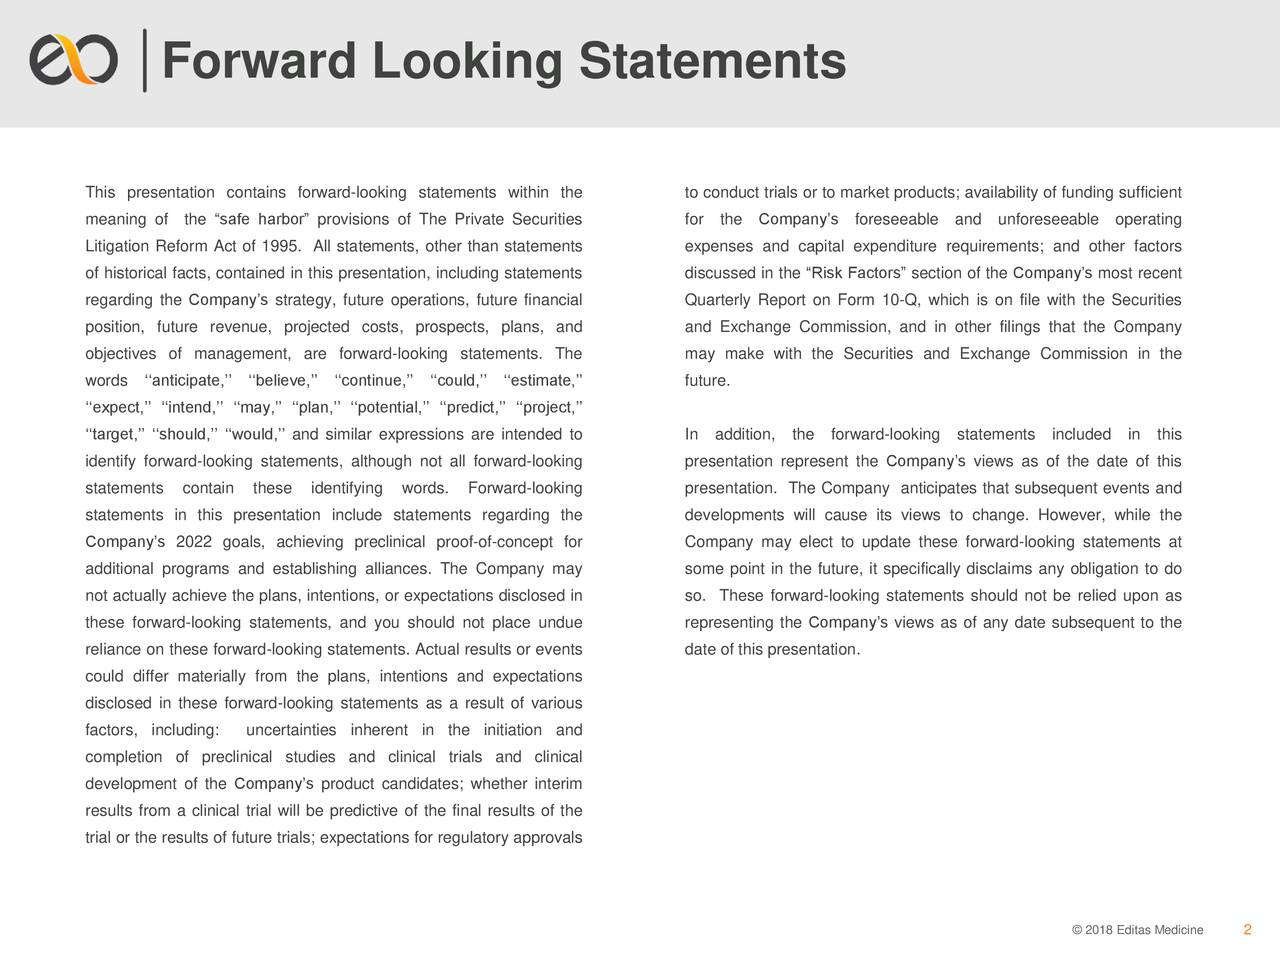 """This presentation contains forward-looking statements within the to conduct trials or to market products; availability of funding sufficient meaning of the """"safe harbor"""" provisions of The Private Securities for the Company's foreseeable and unforeseeable operating Litigation Reform Act of 1995. All statements, other than statements expenses and capital expenditure requirements; and other factors of historical facts, contained in this presentation, including statements discussed in the """"Risk Factors"""" section of the Company's most recent regarding the Company's strategy, future operations, future financial Quarterly Report on Form 10-Q, which is on file with the Securities position, future revenue, projected costs, prospects, plans, and and Exchange Commission, and in other filings that the Company objectives of management, are forward-looking statements. The may make with the Securities and Exchange Commission in the words ''anticipate,''''believe,'''continue,'' ''could,''''estimate,'' future. ''expect,'' ''intend,'' ''may,'' ''plan,'' ''potential,'' ''predict,'' ''project,'' ''target,'' ''should,'' ''would,'' and similar expressions are intended to In addition, the forward-looking statements included in this identify forward-looking statements, although not all forward-looking presentation represent the Company's views as of the date of this statements contain these identifying words. Forward-looking presentation. The Company anticipates that subsequent events and statements in this presentation include statements regarding the developments will cause its views to change. However, while the Company's 2022 goals, achieving preclinical proof-of-concept for Company may elect to update these forward-looking statements at additional programs and establishing alliances. The Company may some point in the future, it specifically disclaims any obligation to do not actually achieve the plans, intentions, or expectations disclosed in so. These forward-looking statements should"""